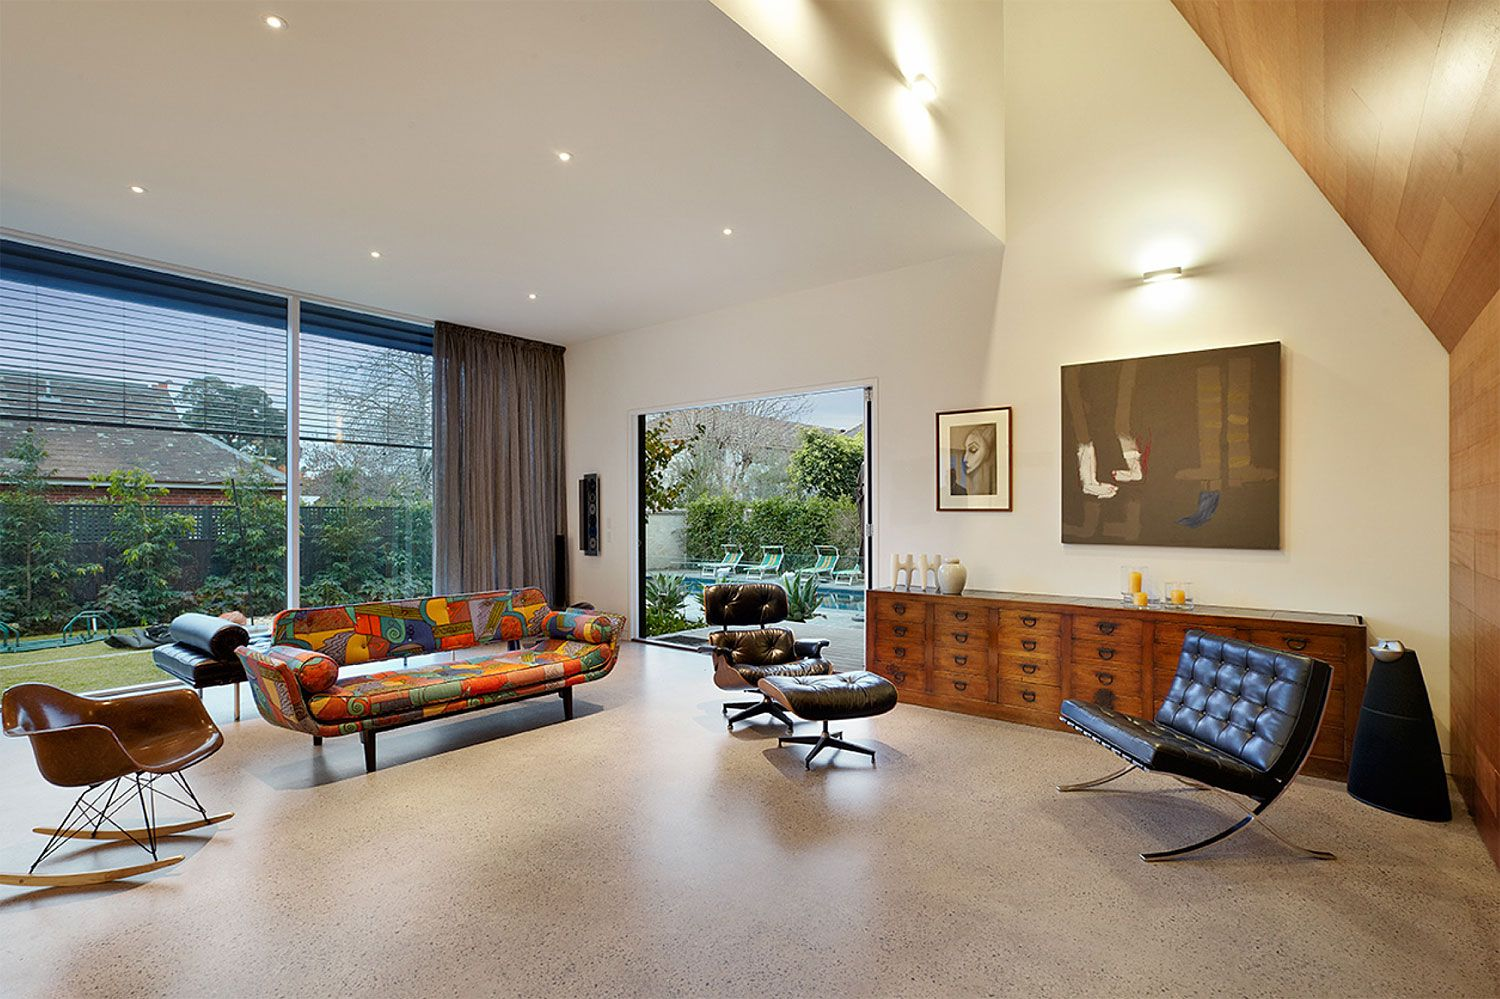 Victorian house colorful interiors for a classy exterior south yarra - Spacious Renovated Victorian House In South Yarra 3